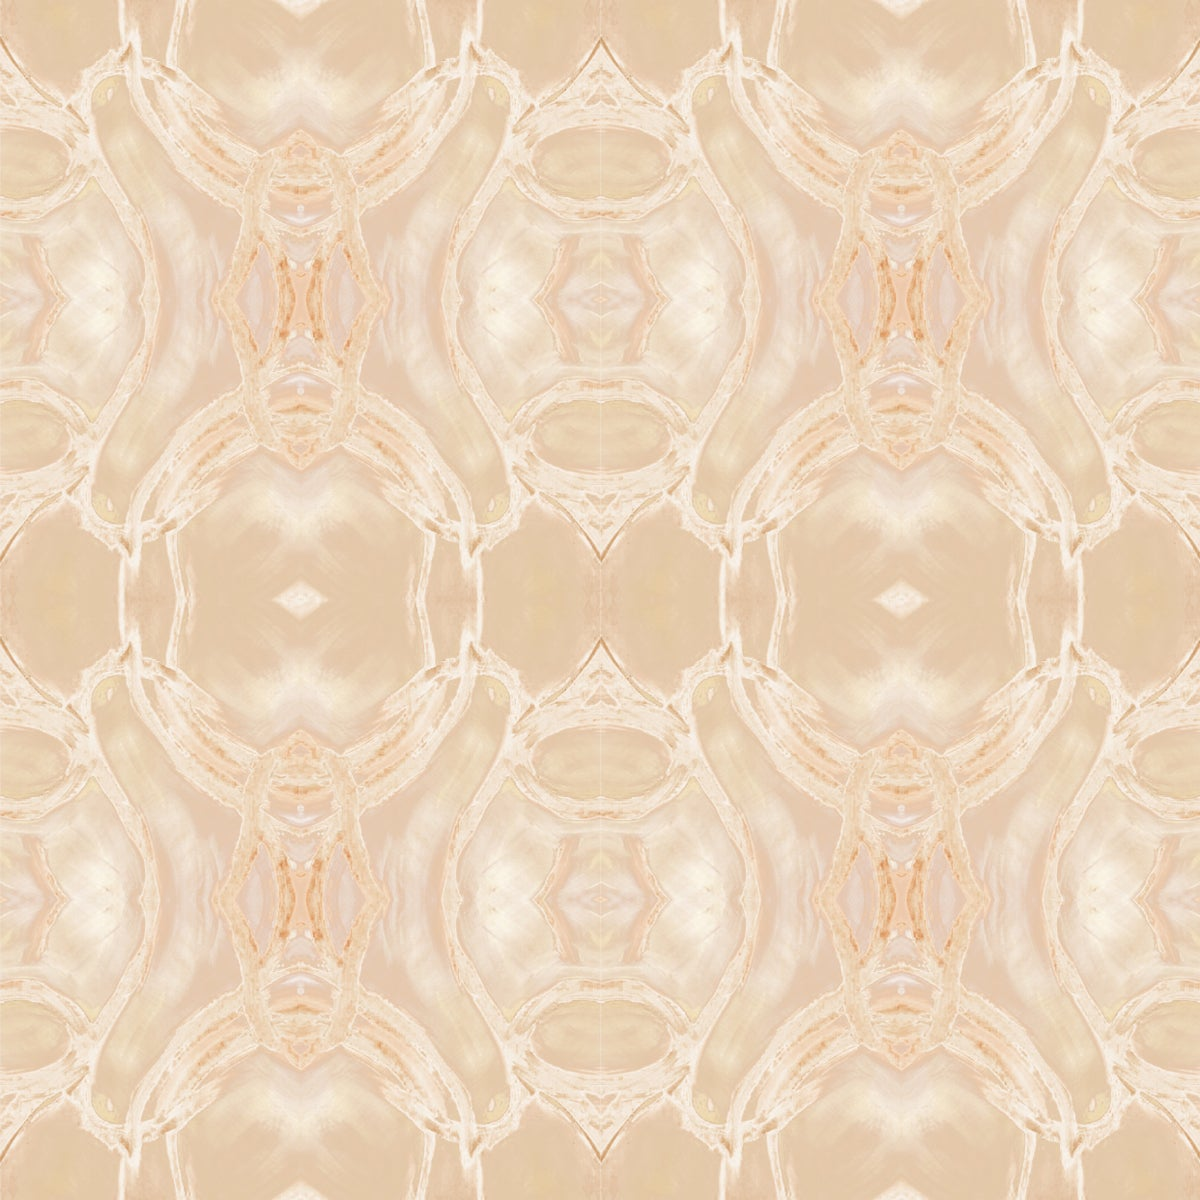 Image of 4100-D Wallpaper/Fabric